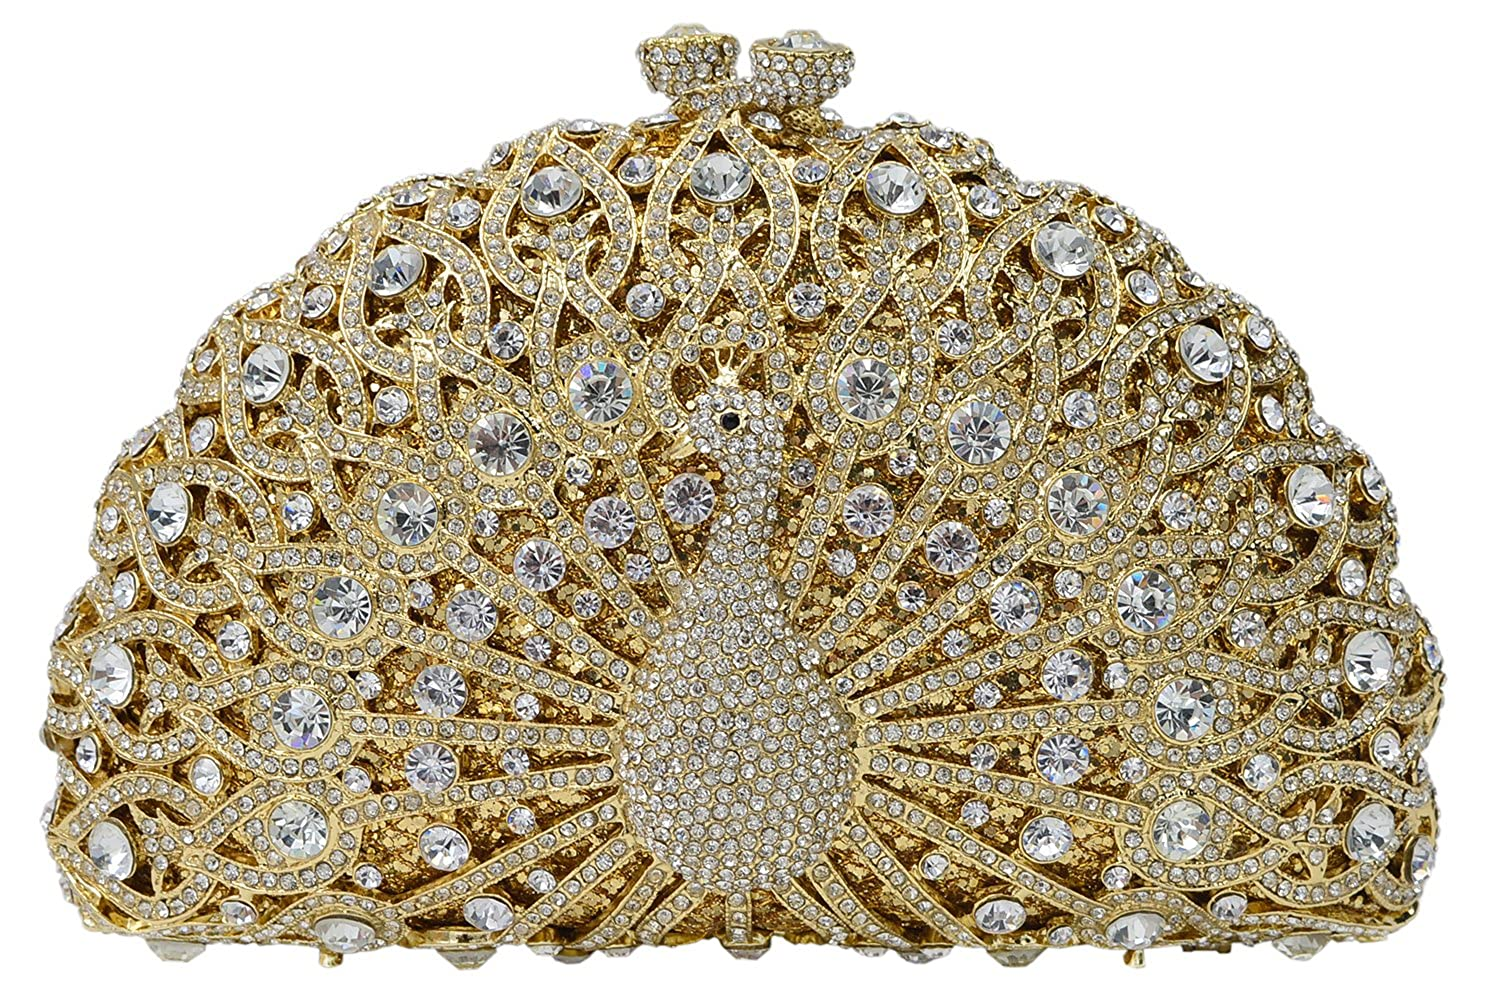 ILILAC Luxury Crystal Clutch 3D Peacock Rhinestons Evening Bag For Party and Wedding